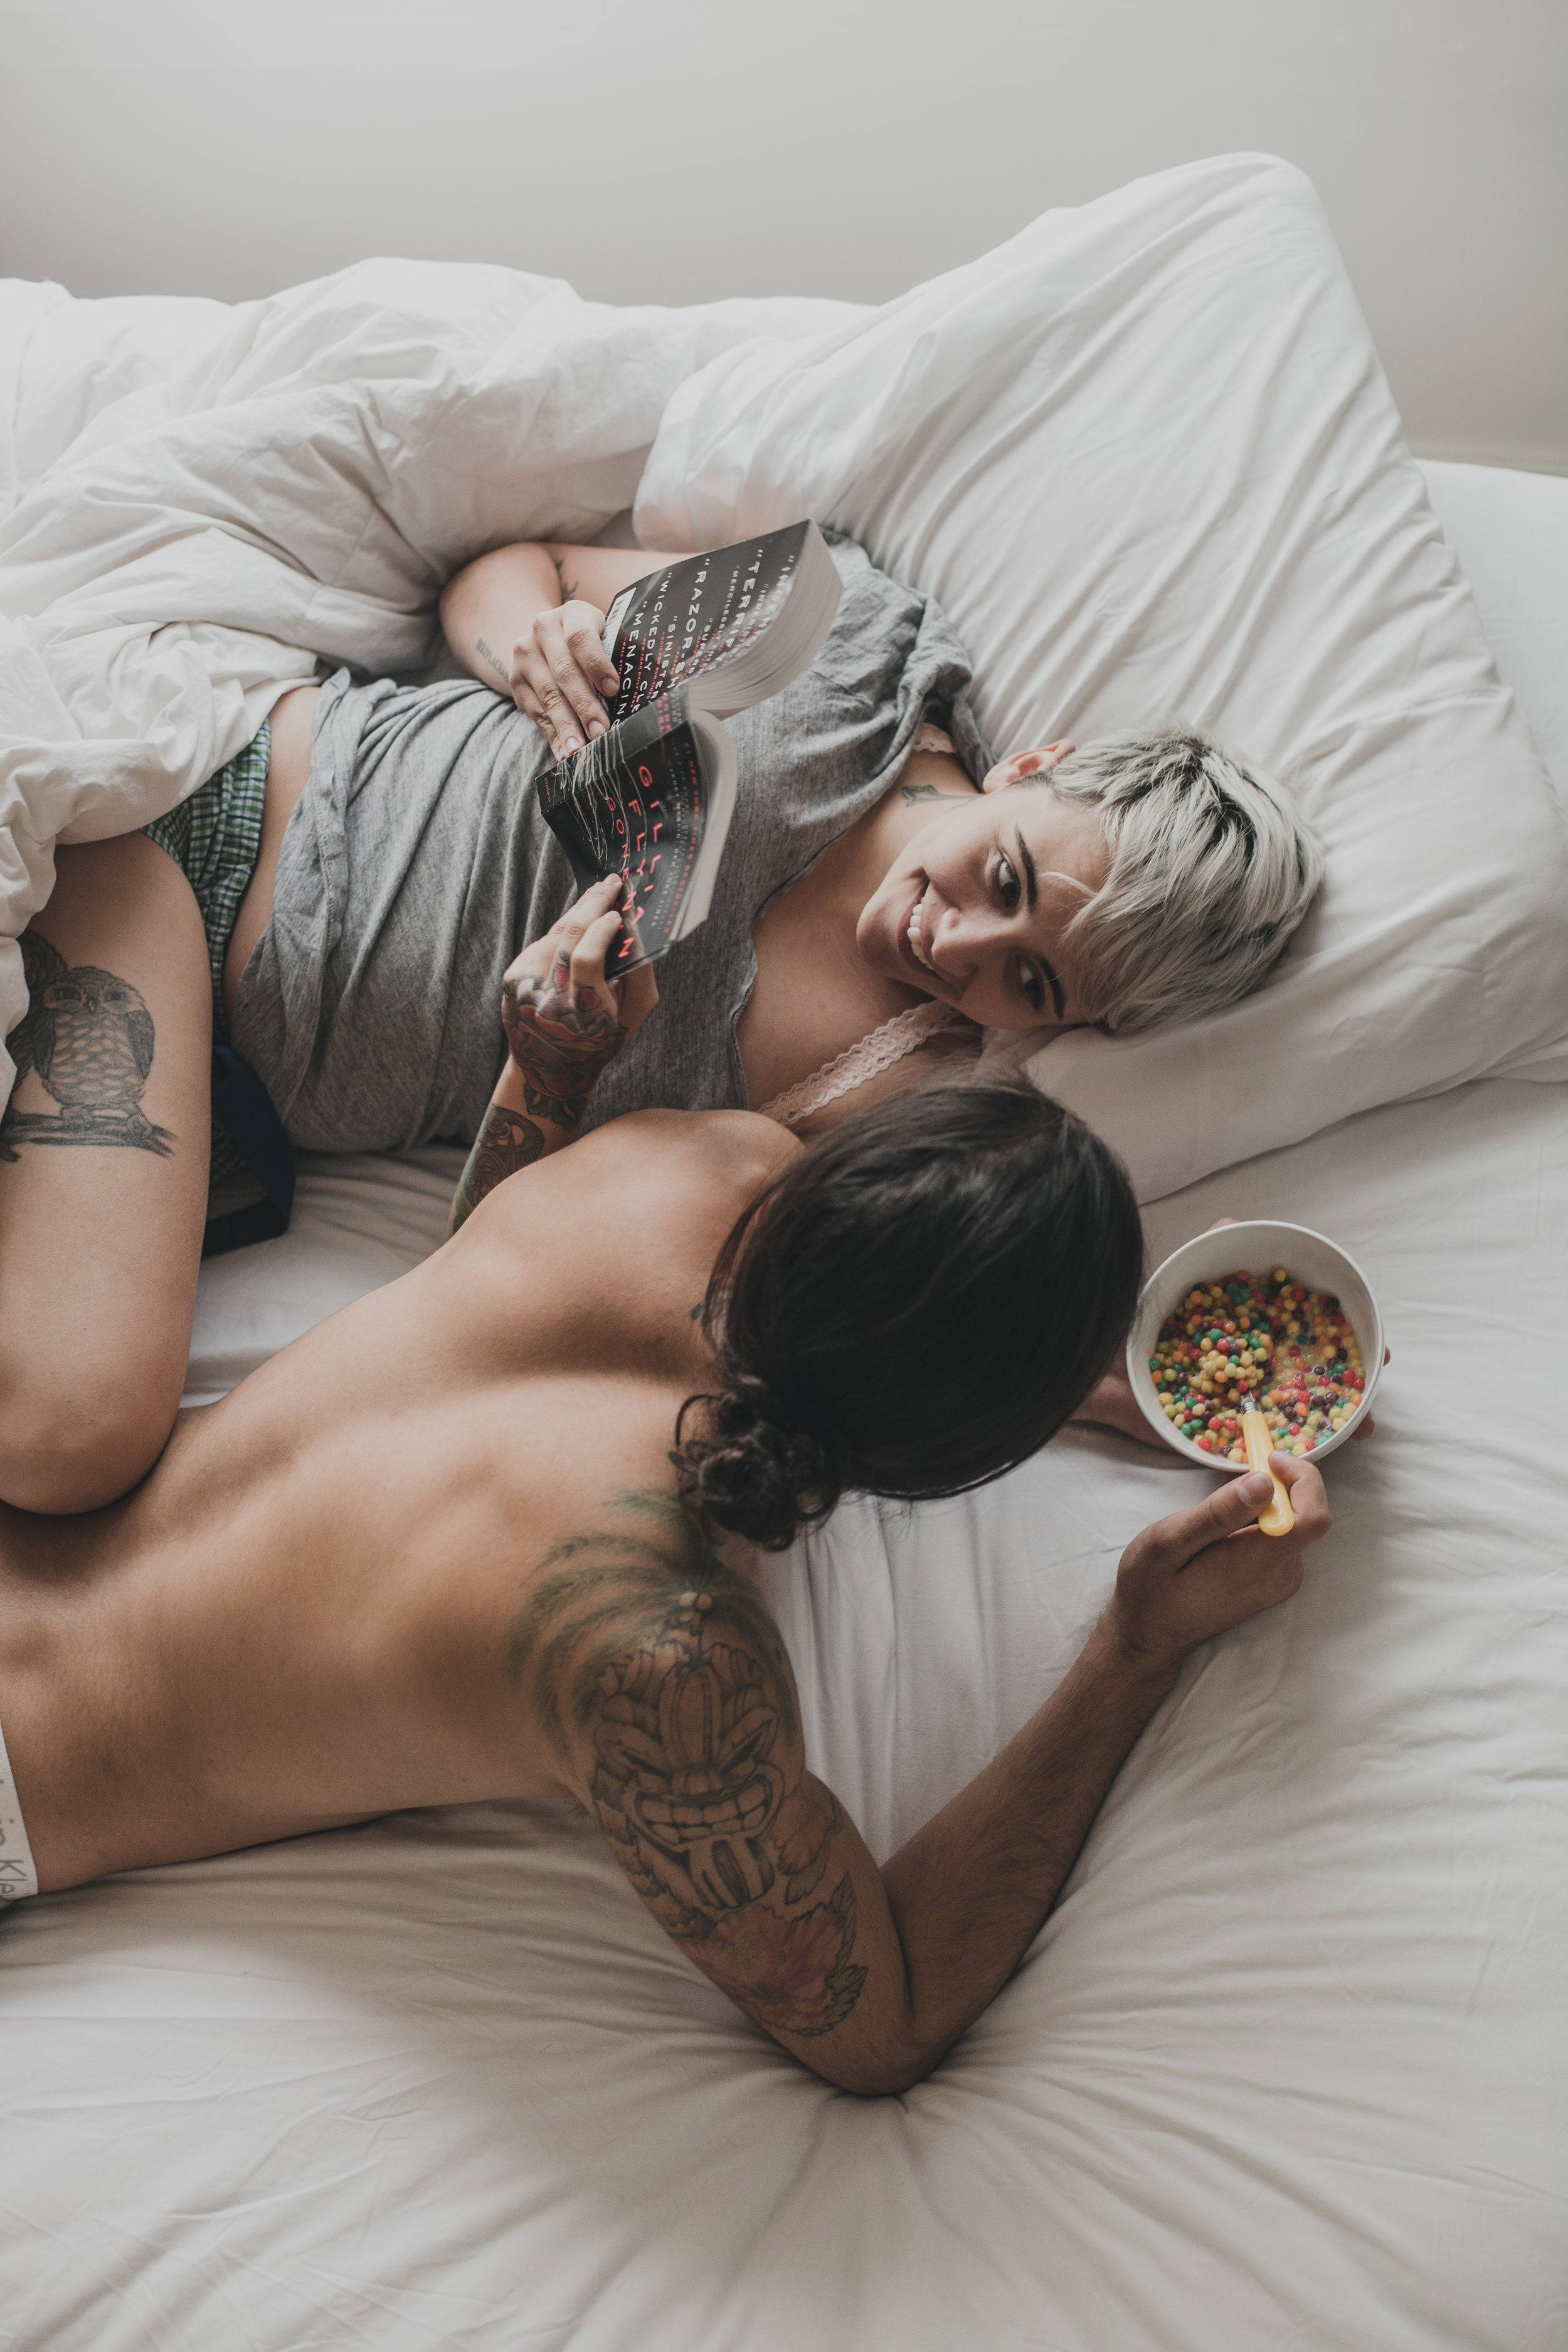 © duston-todd-lifestyle-couple-intimate-reading-cereal.jpg